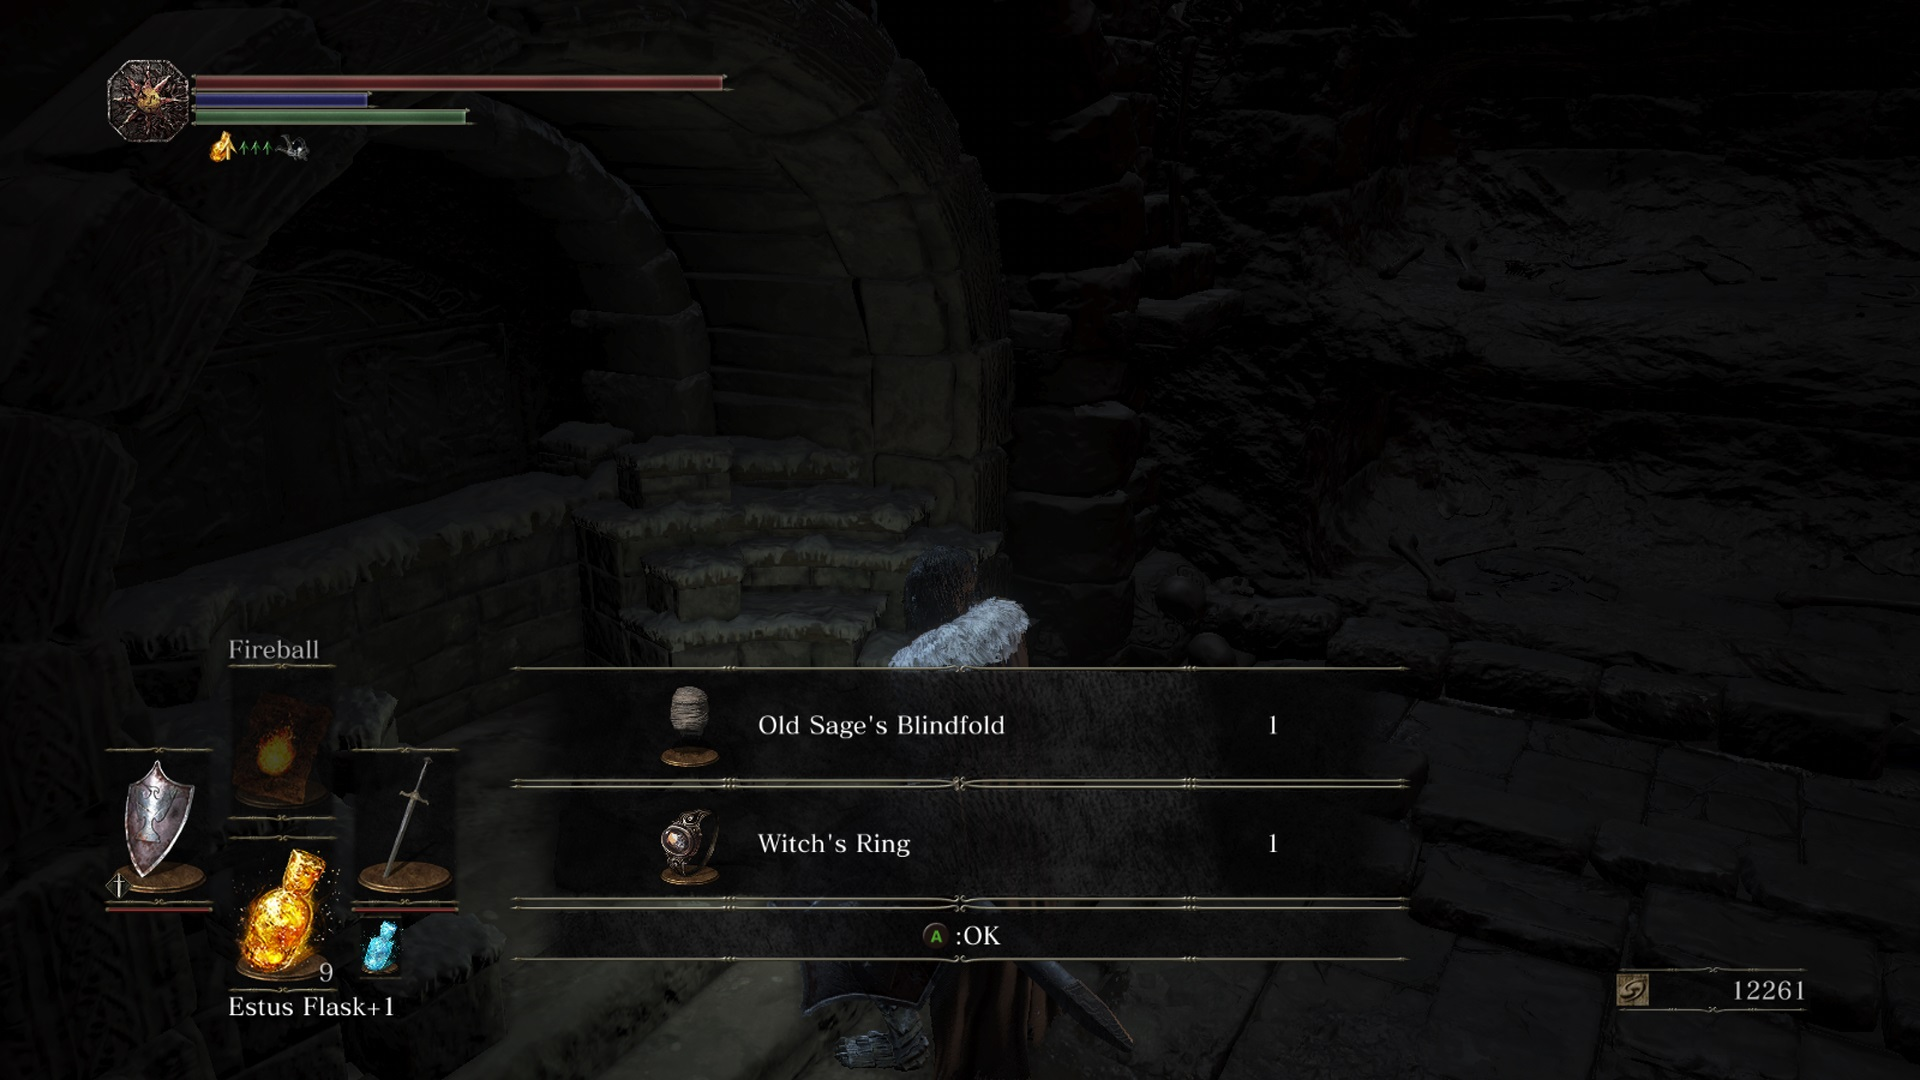 Dark Souls 3 Catacombs Of Carthus Defeat The Fire Demon Usgamer The site is adjacent to that of the former dome of discovery, which was built for the festival of britain in 1951. dark souls 3 catacombs of carthus